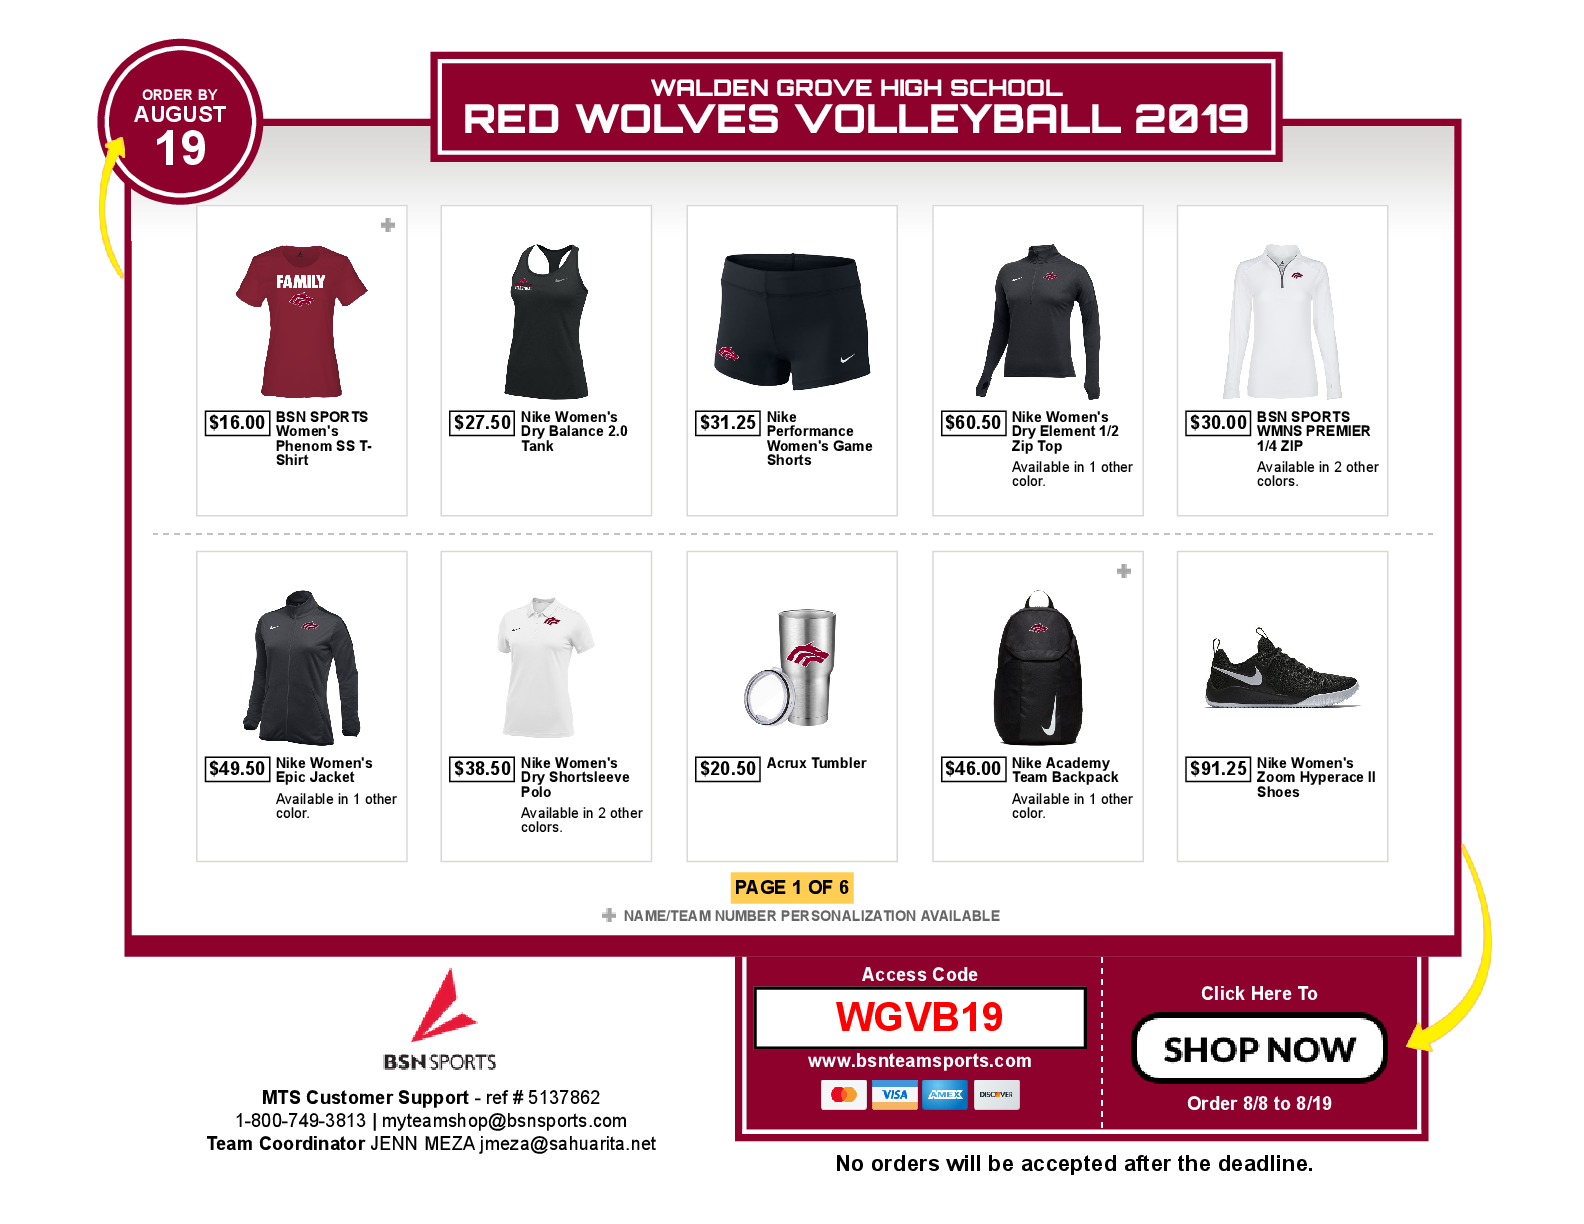 Order Volleyball Gear before 8/19!